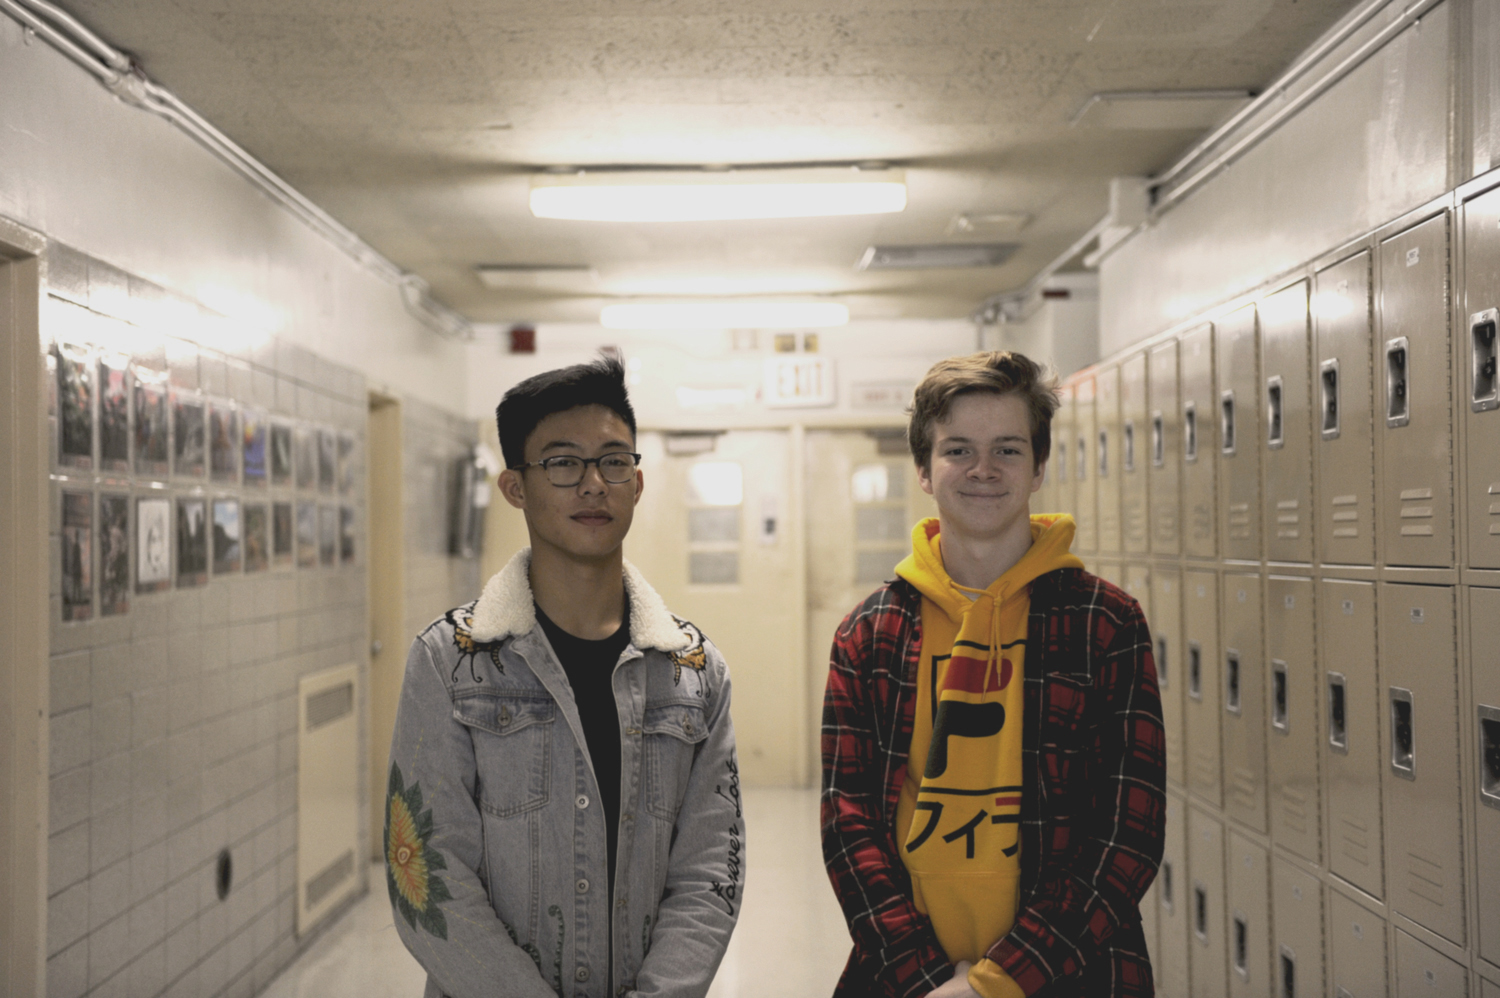 Ethan Sison '20 and Harry Hinzman '20   believe that there may be life on other planets.